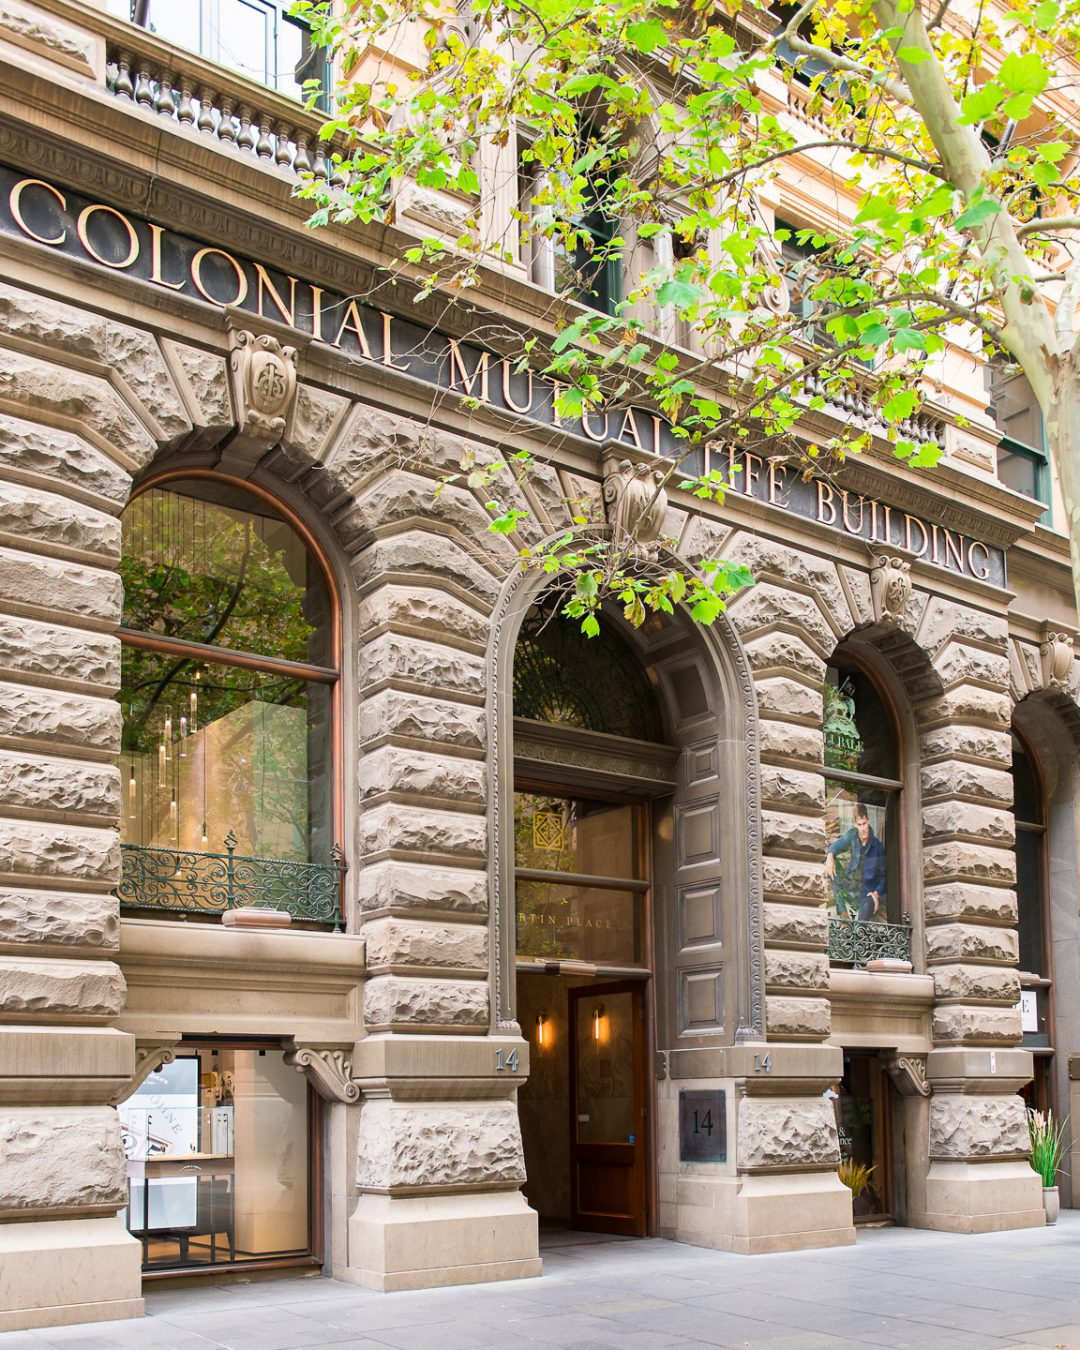 Colonial Mutual Life building Martin Place entrance